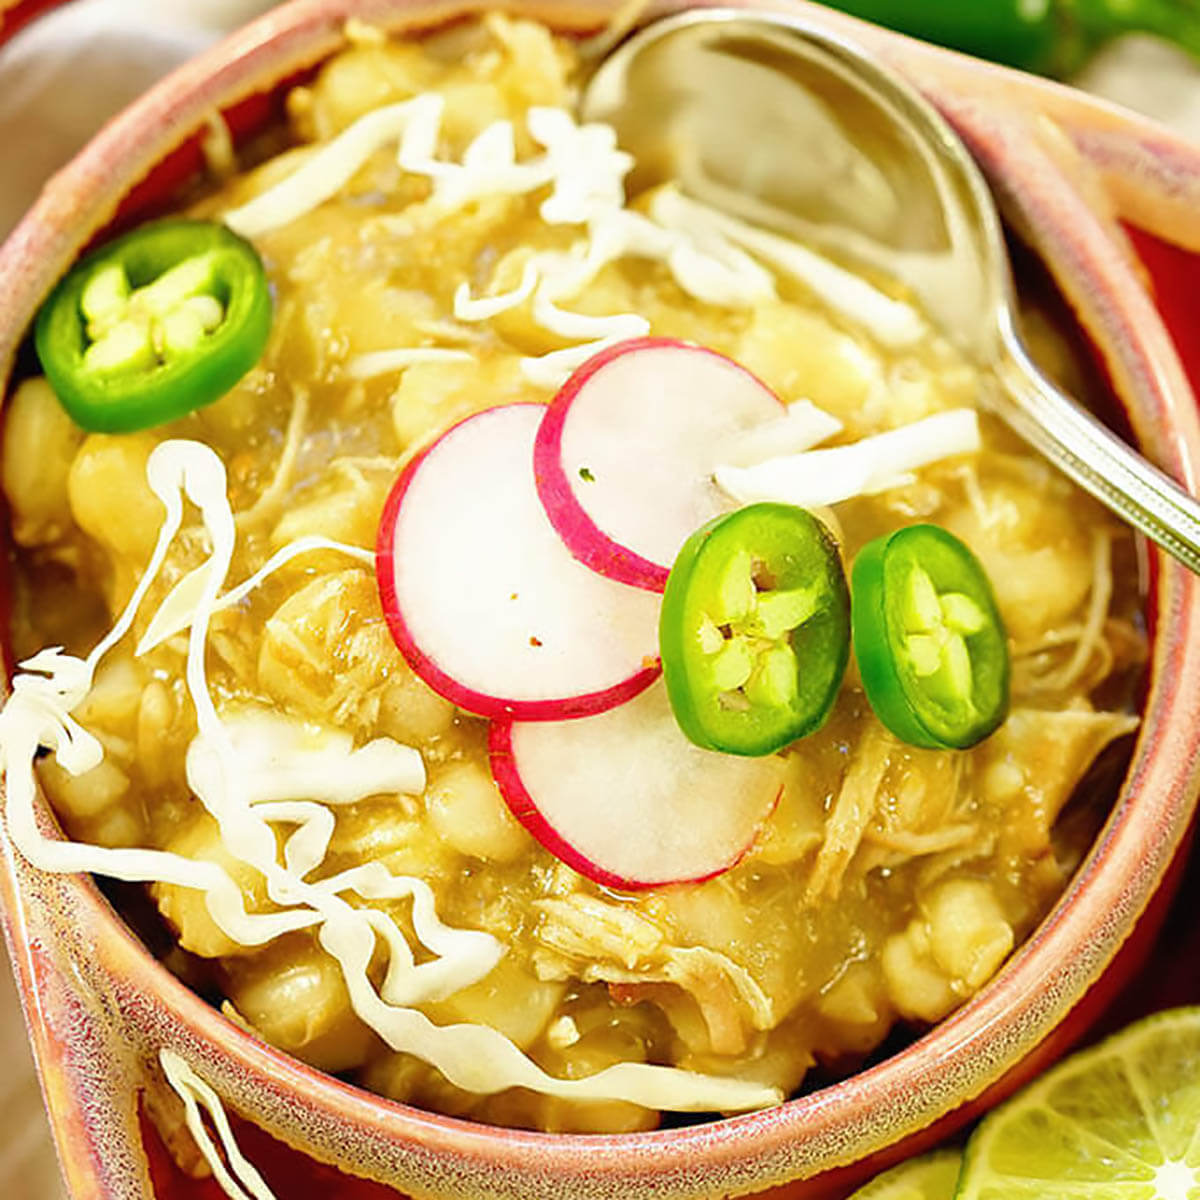 Chicken Posole garnished with jalapeños, with serving spoon.